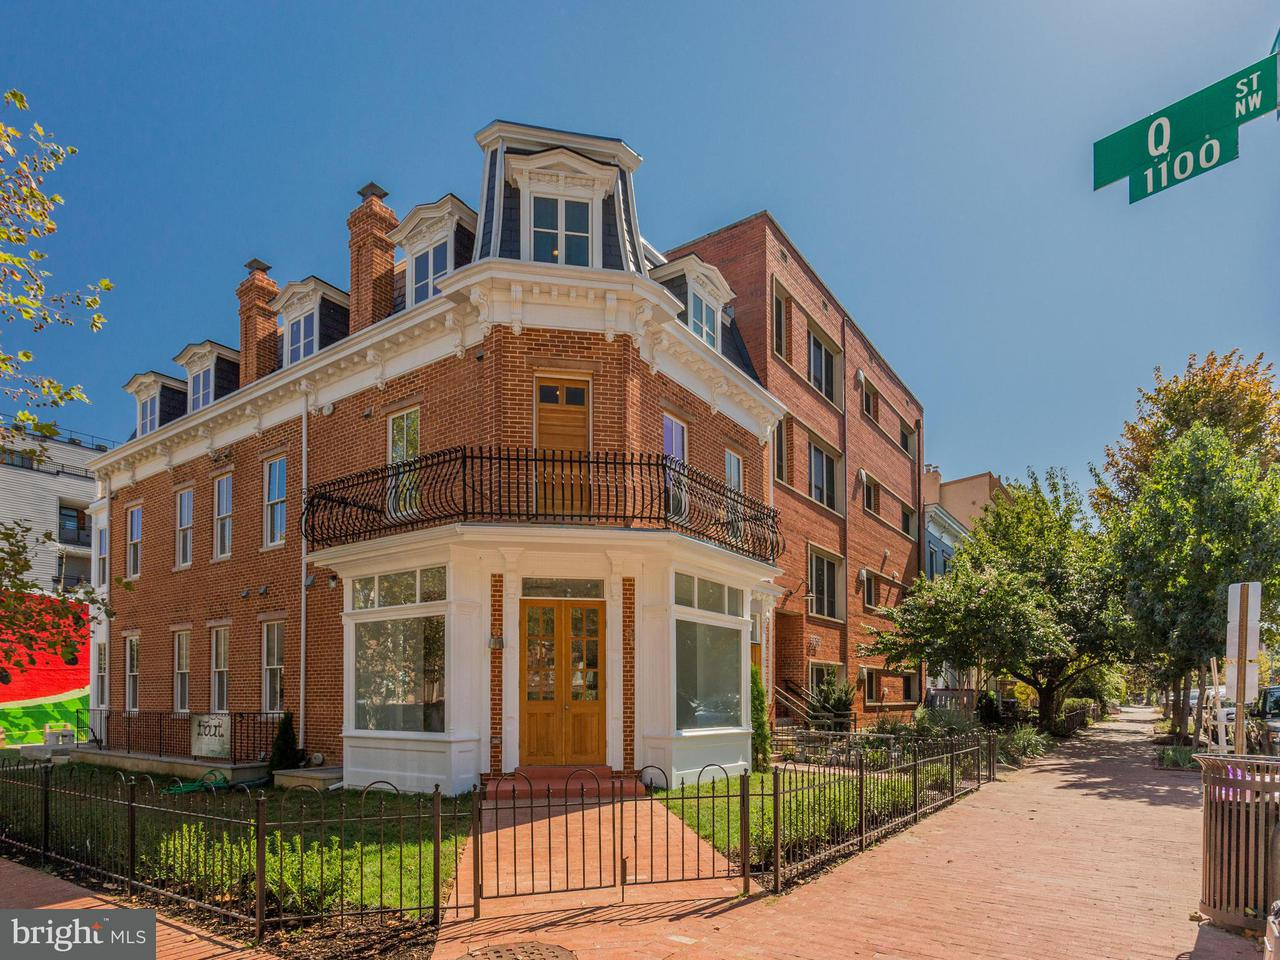 Condominium for Sale at 1527 12th St Nw #2 1527 12th St Nw #2 Washington, District Of Columbia 20005 United States